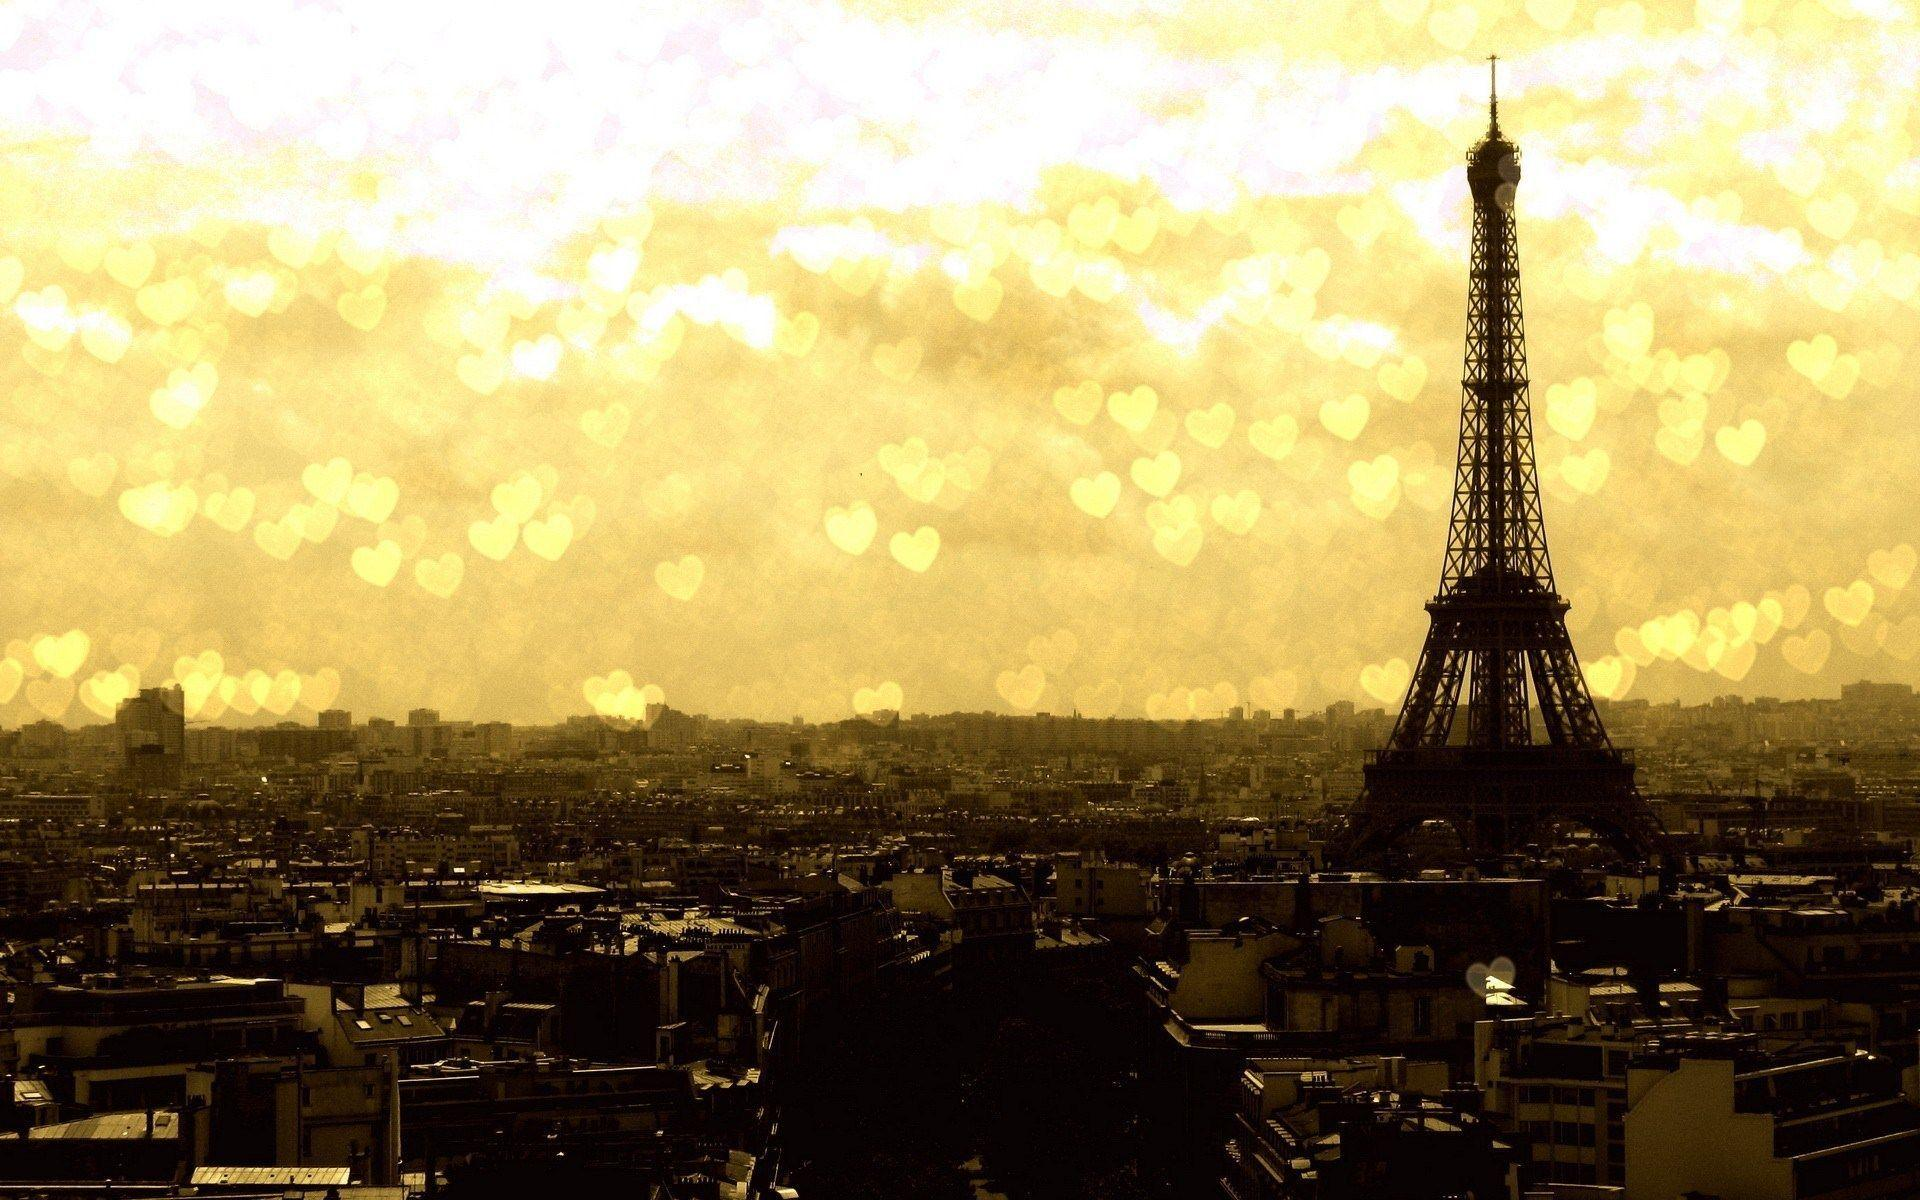 paris wallpapers, paris wallpaper 1080p